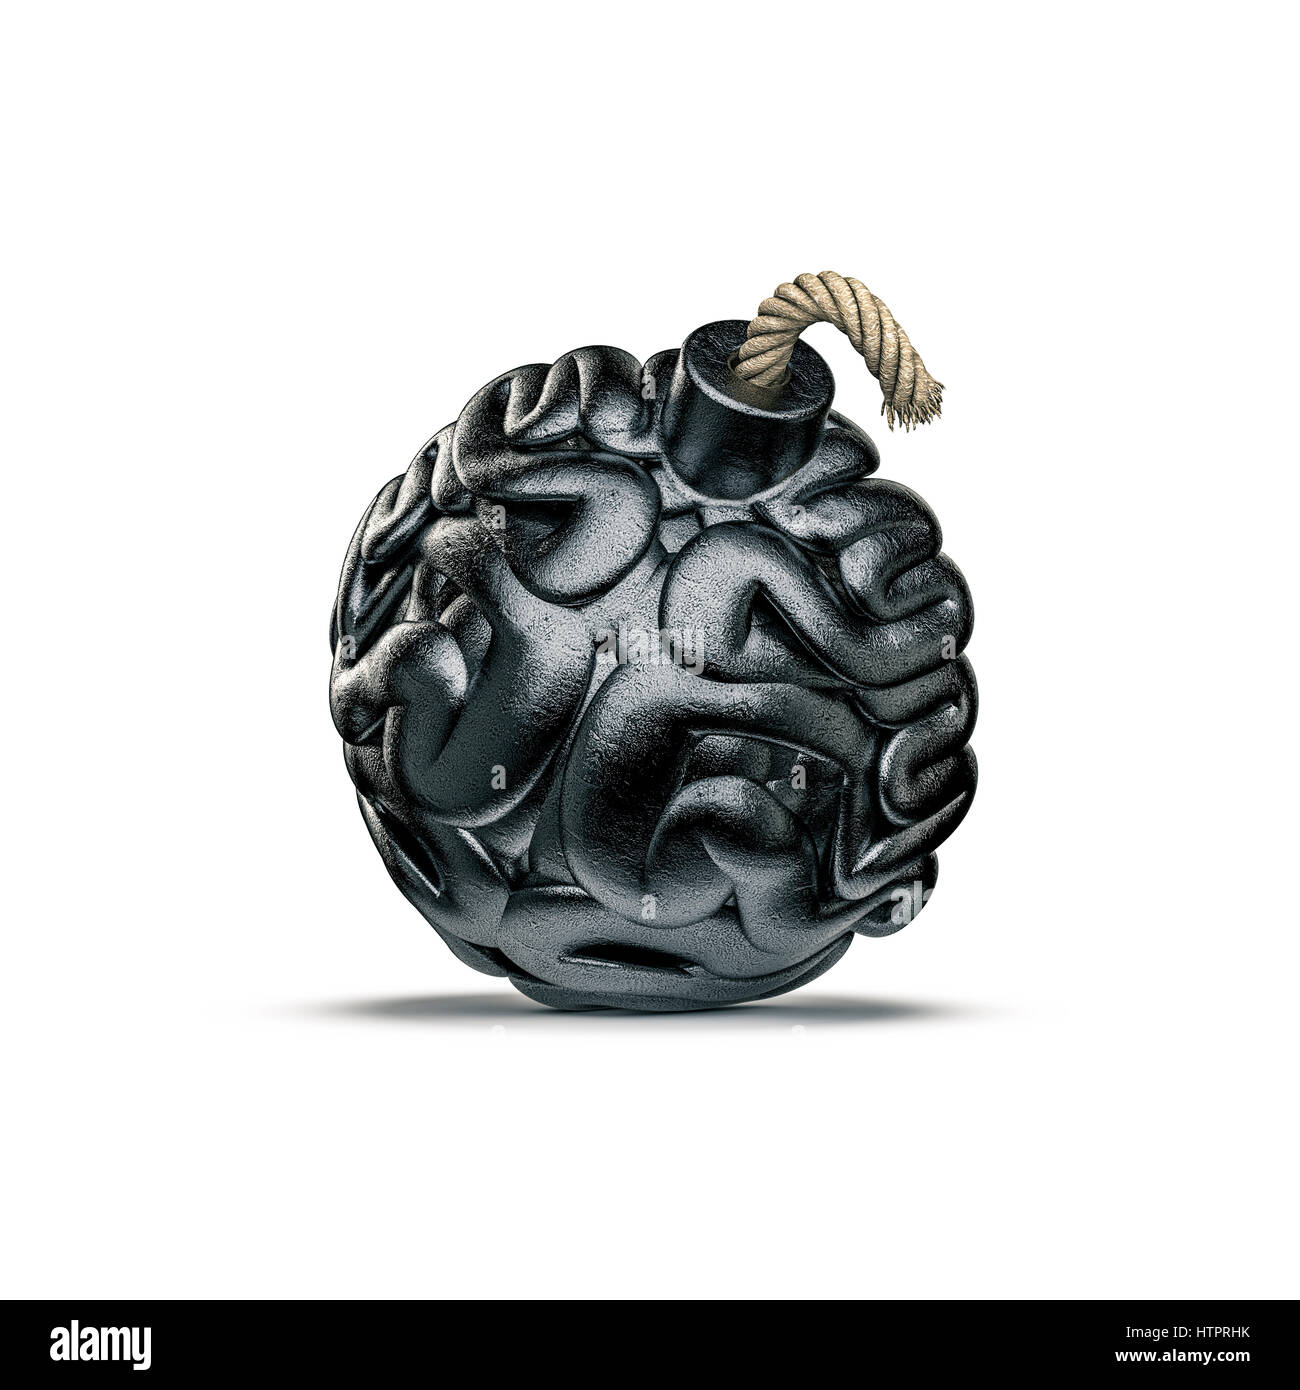 Brain bomb concept / 3D illustration of metal bomb with fuse shaped like human brain - Stock Image